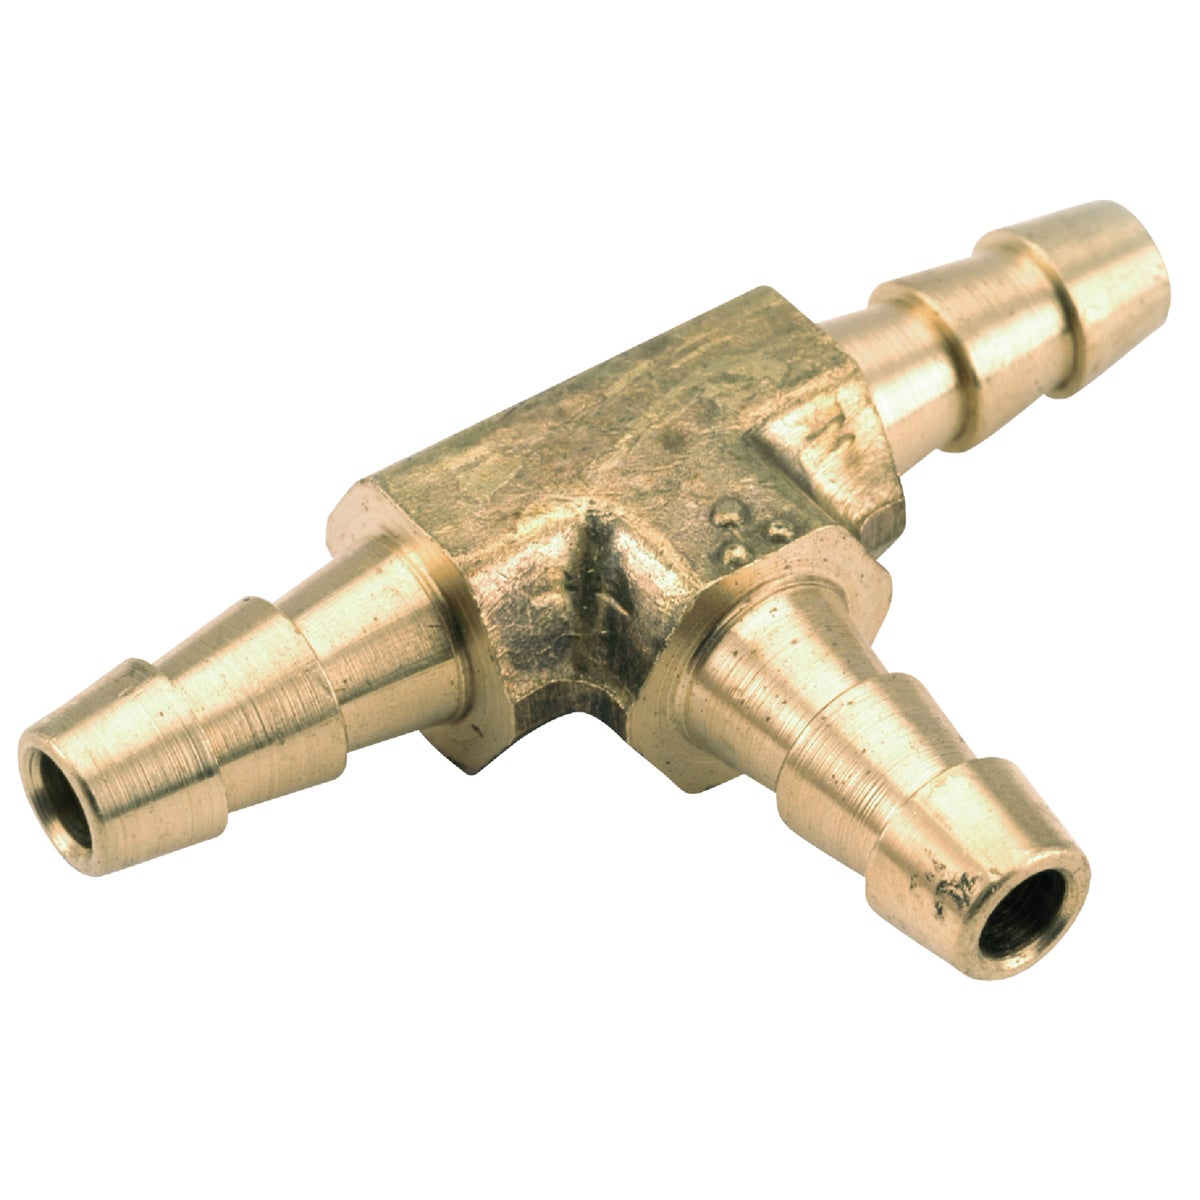 3/8 HOSE BARB TEE - 757024-06 by Anderson Metals Corp